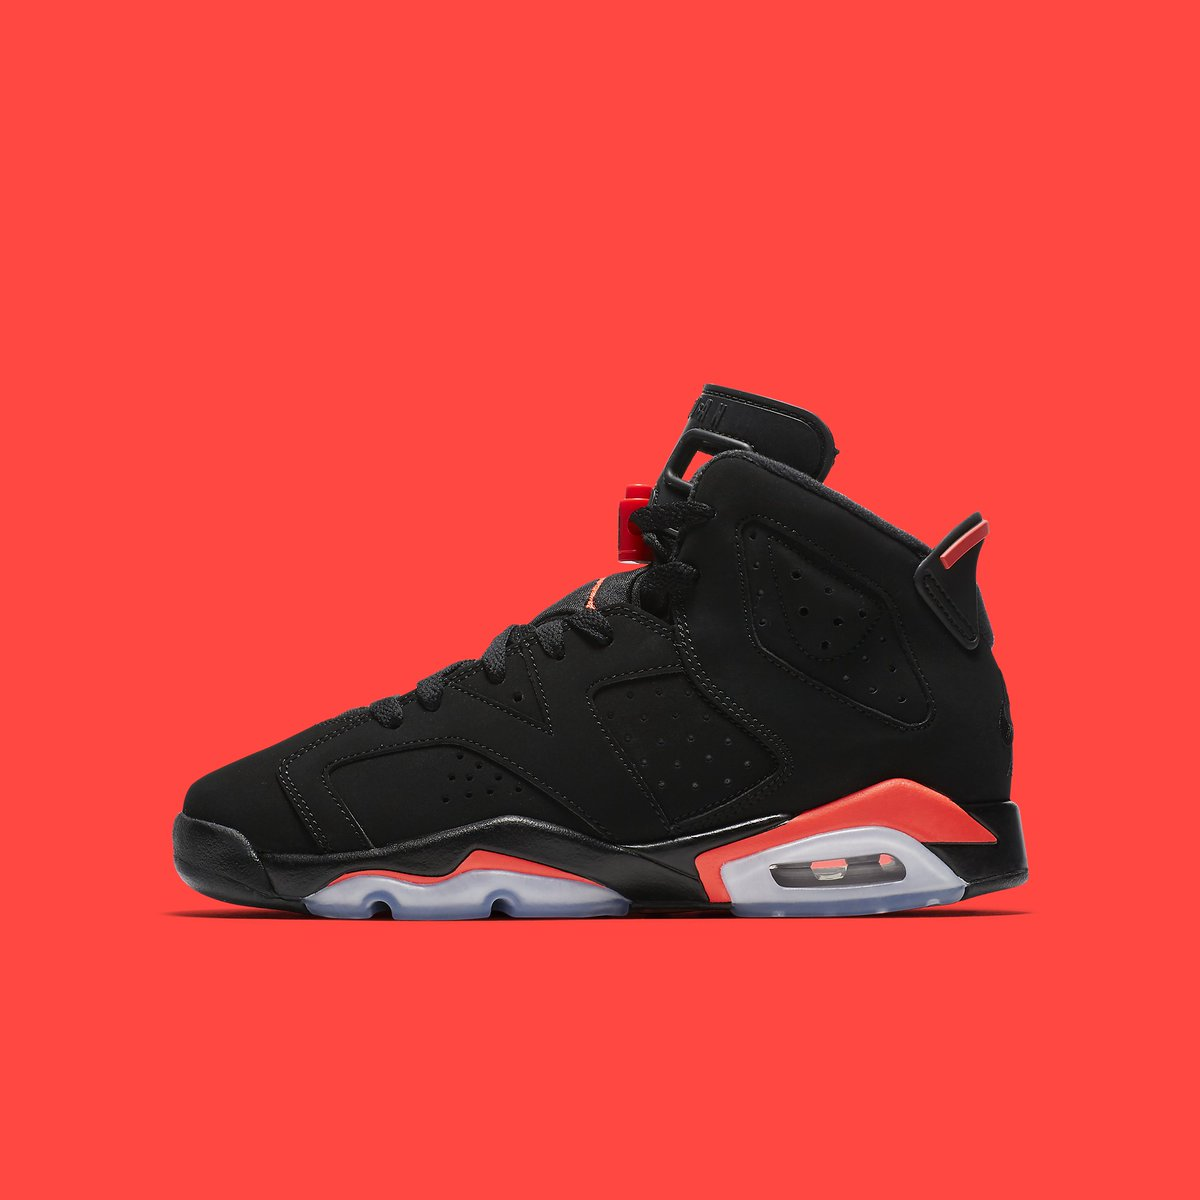 brand new 5a02c 90262 official photos of the infrared air jordan 6 retro in gs sizing releasing  on february 16